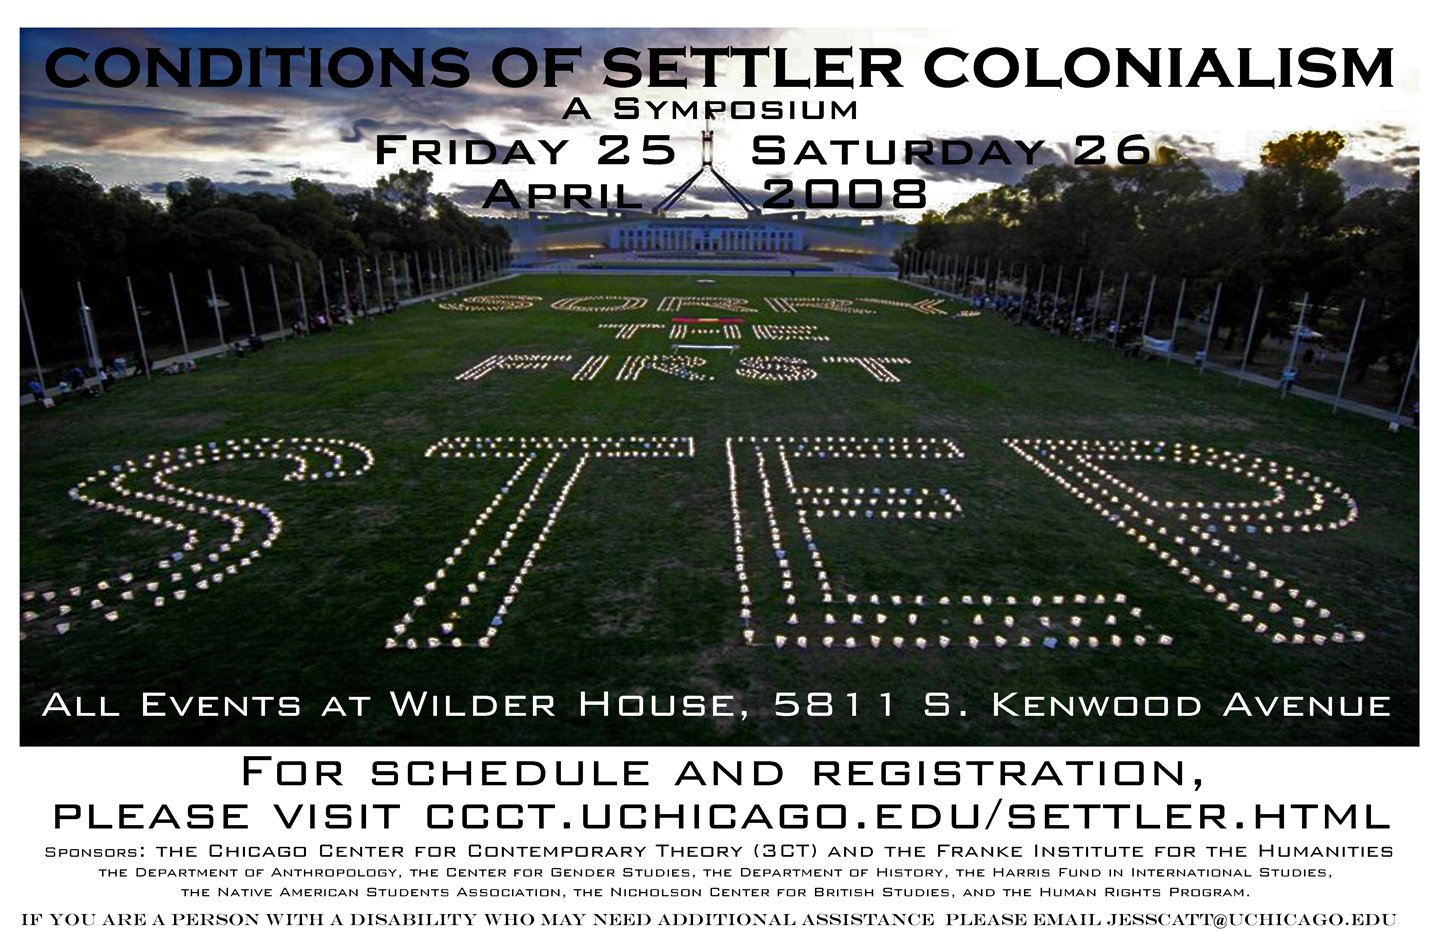 poster for 2008 co-sponsored 3CT symposium on settler colonialism showing white house lawn with giant text laid out upon it reading